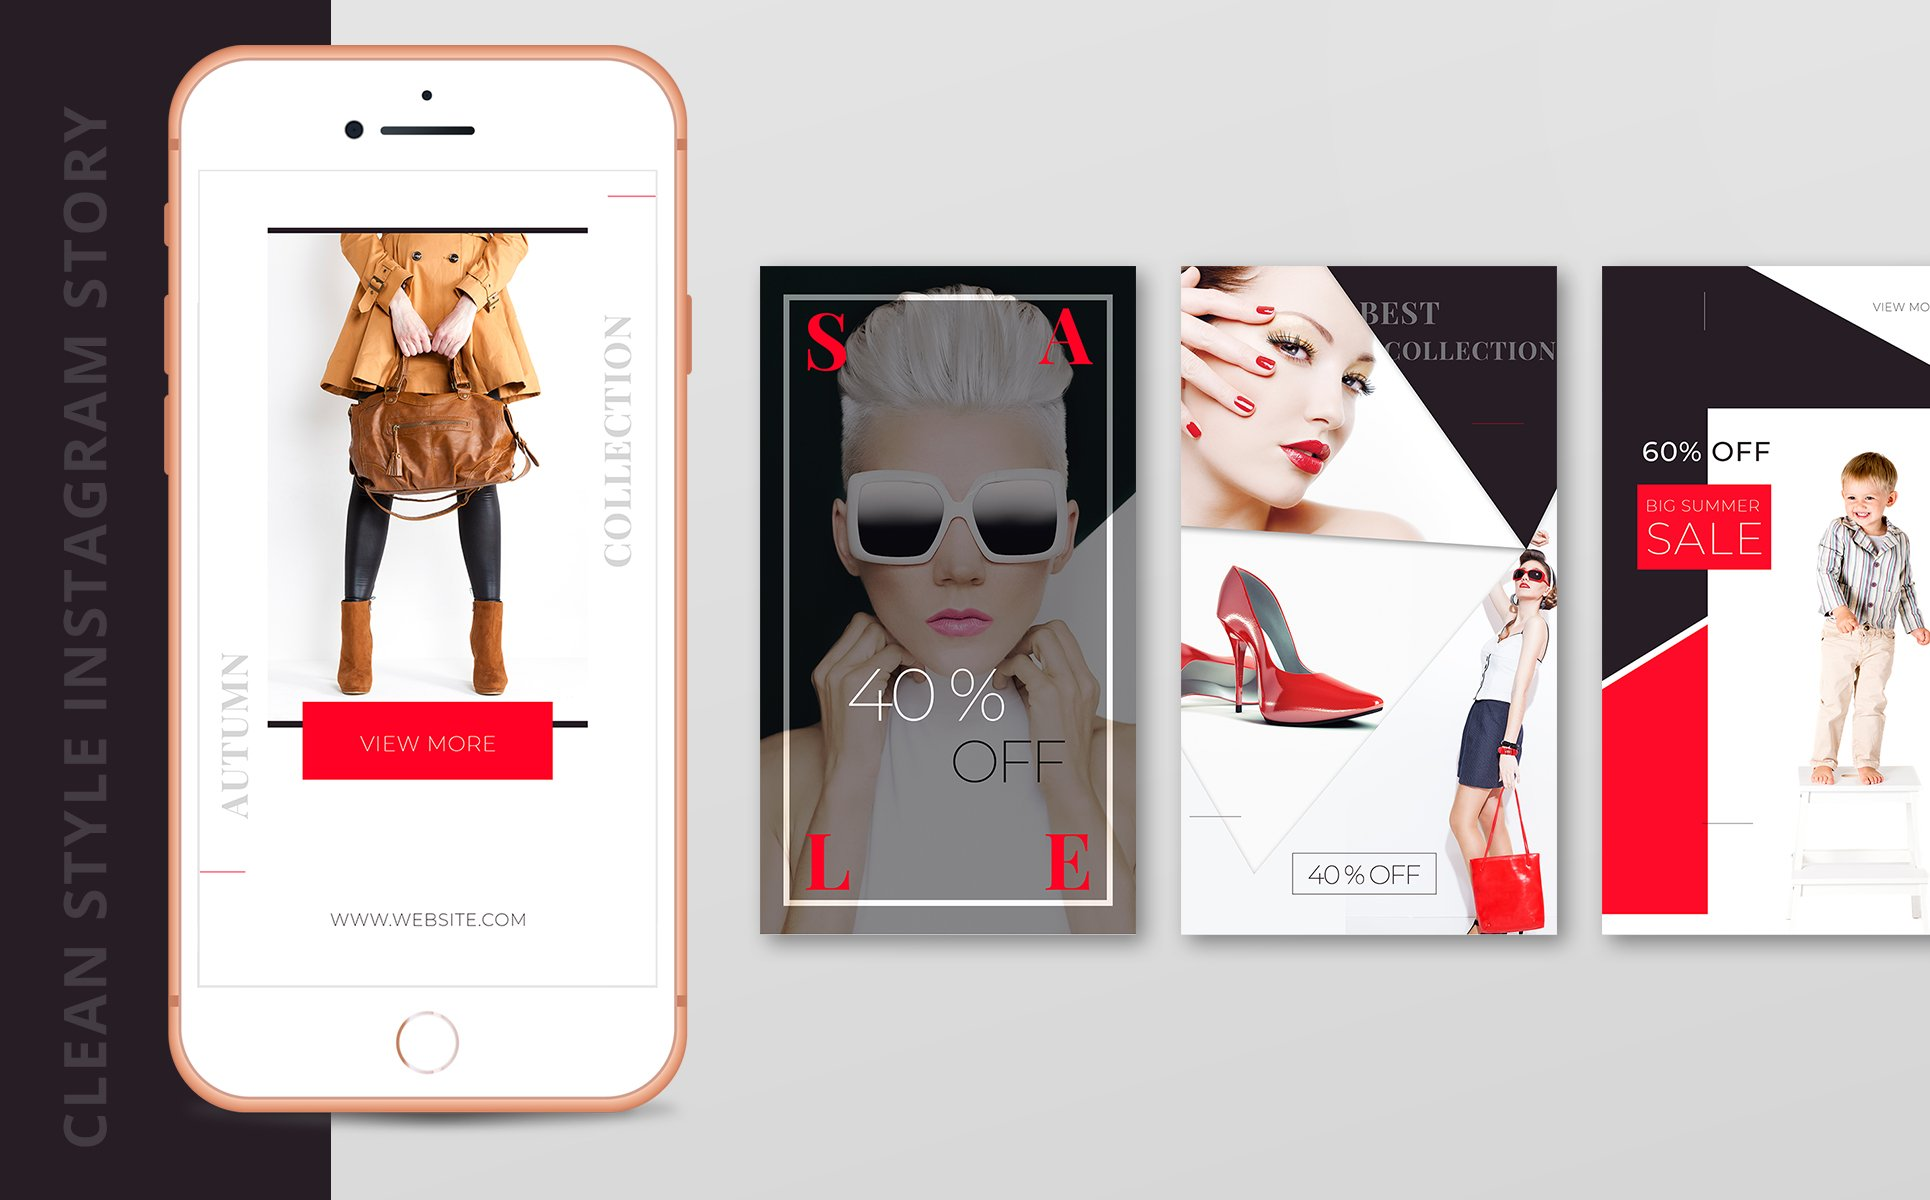 Instagram story template package for fashion business social media zoom in add to collection instagram story ccuart Images